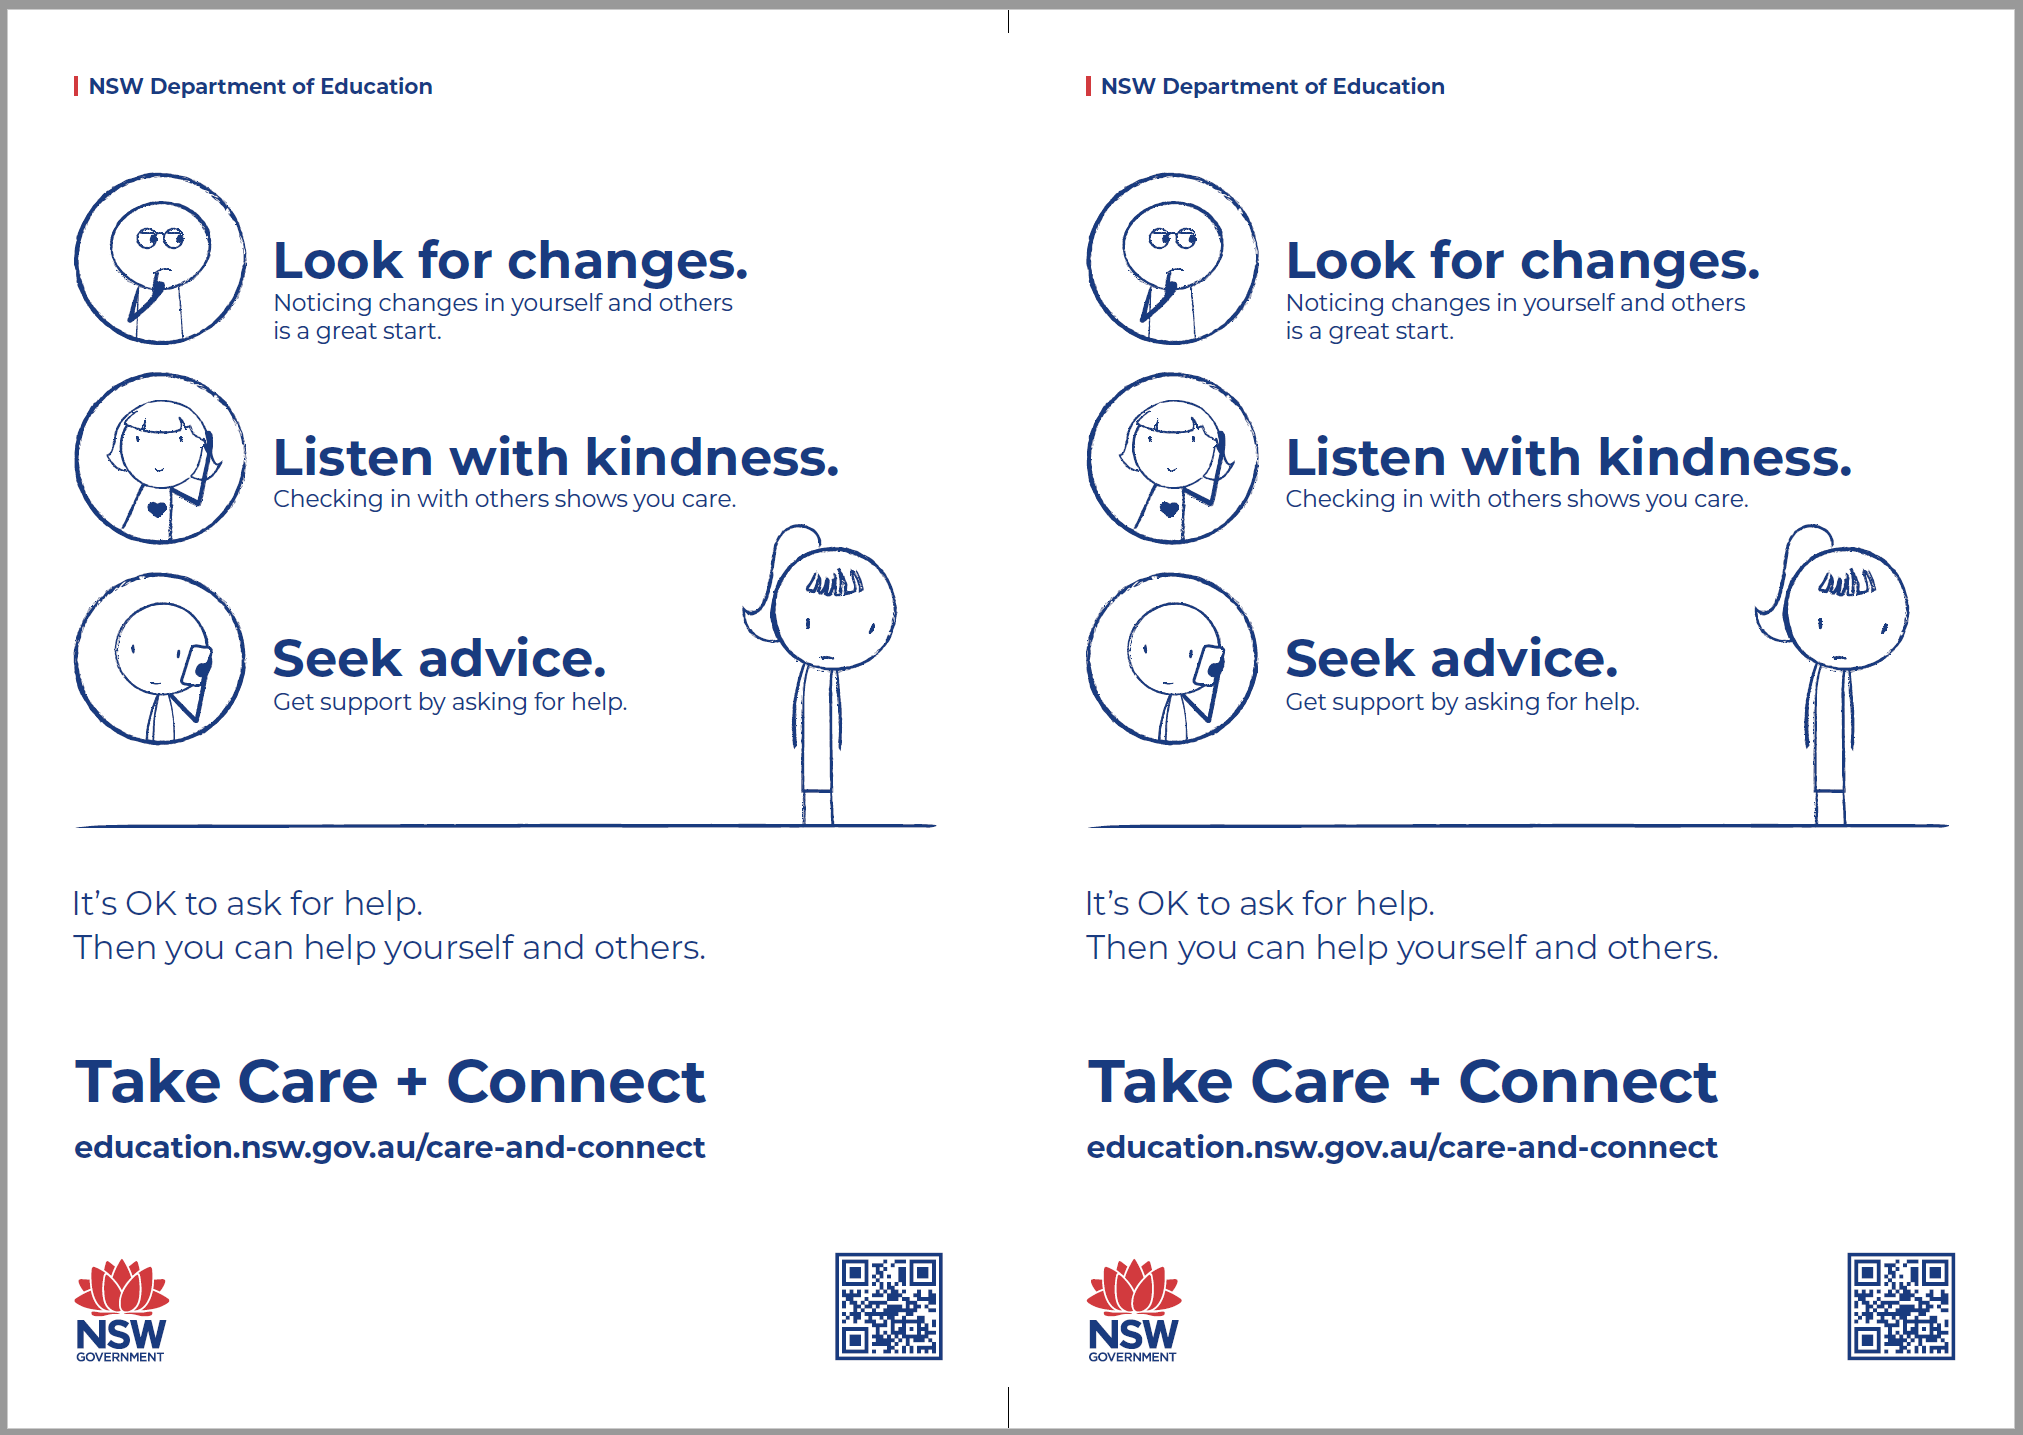 The Care and Connect instructional flyer thumbnail, featuring some text - Look for changes, listen with kindness and seek advice.